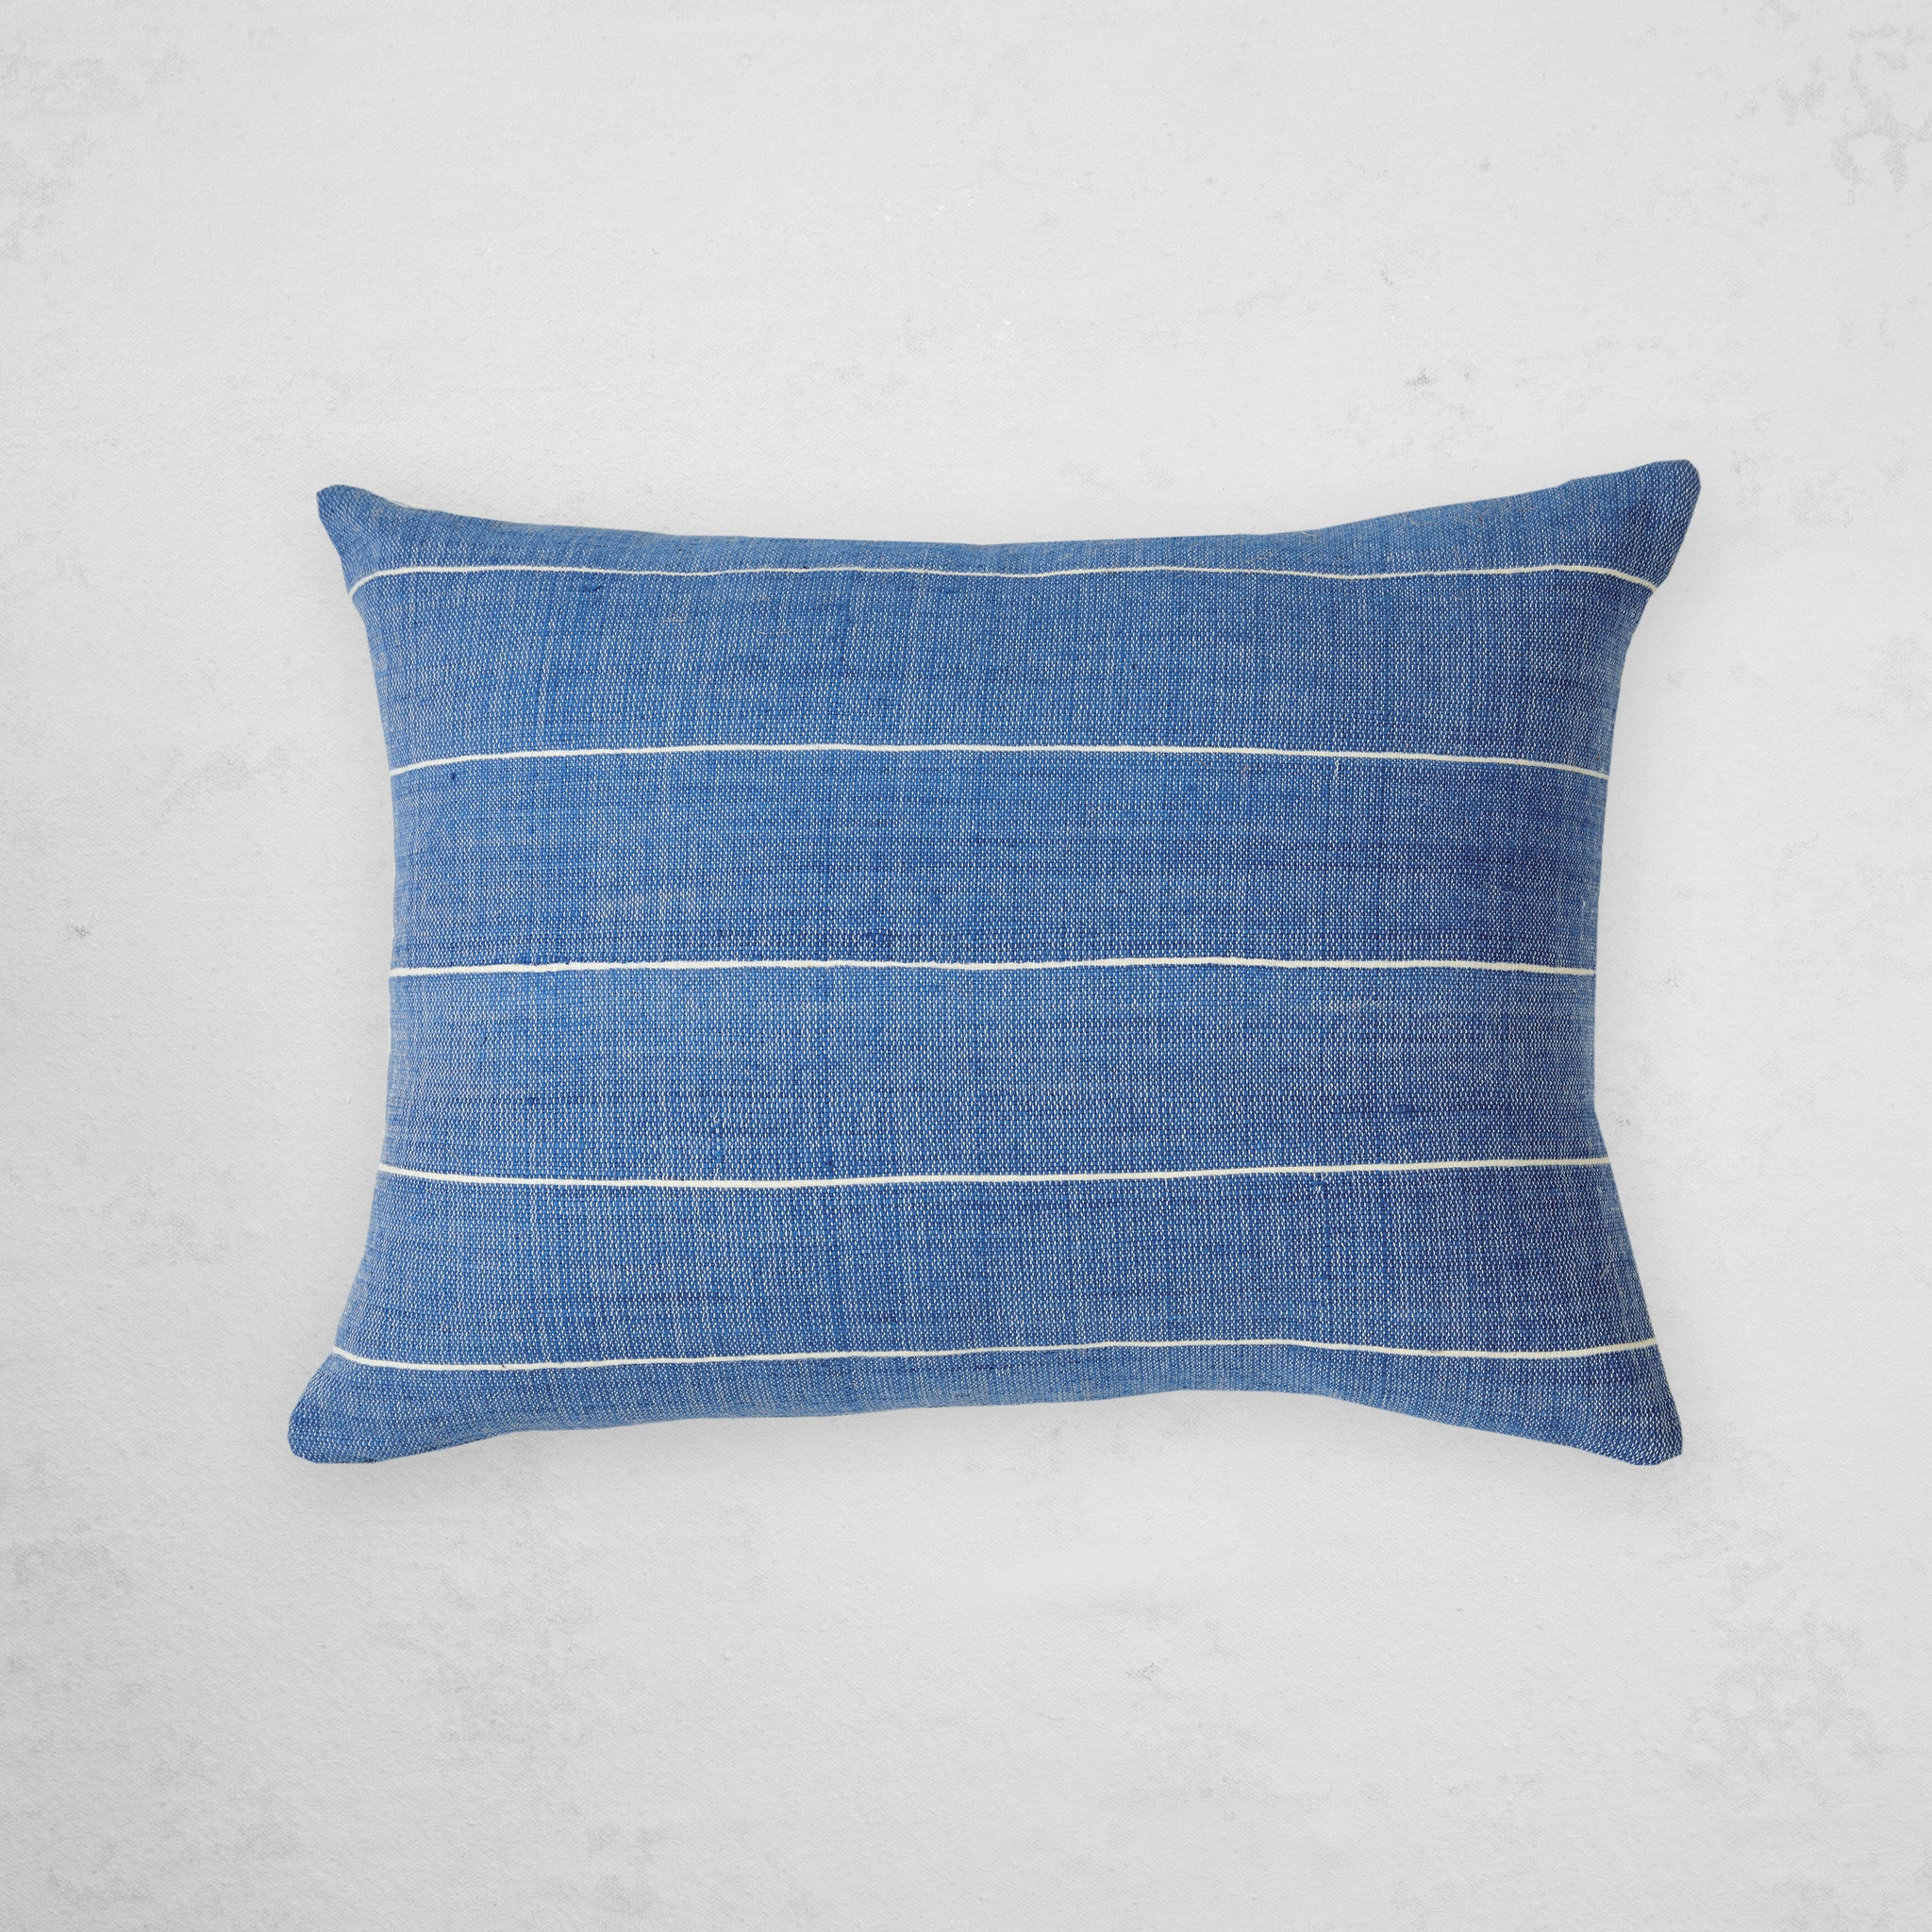 Melkam Pillow - Azure